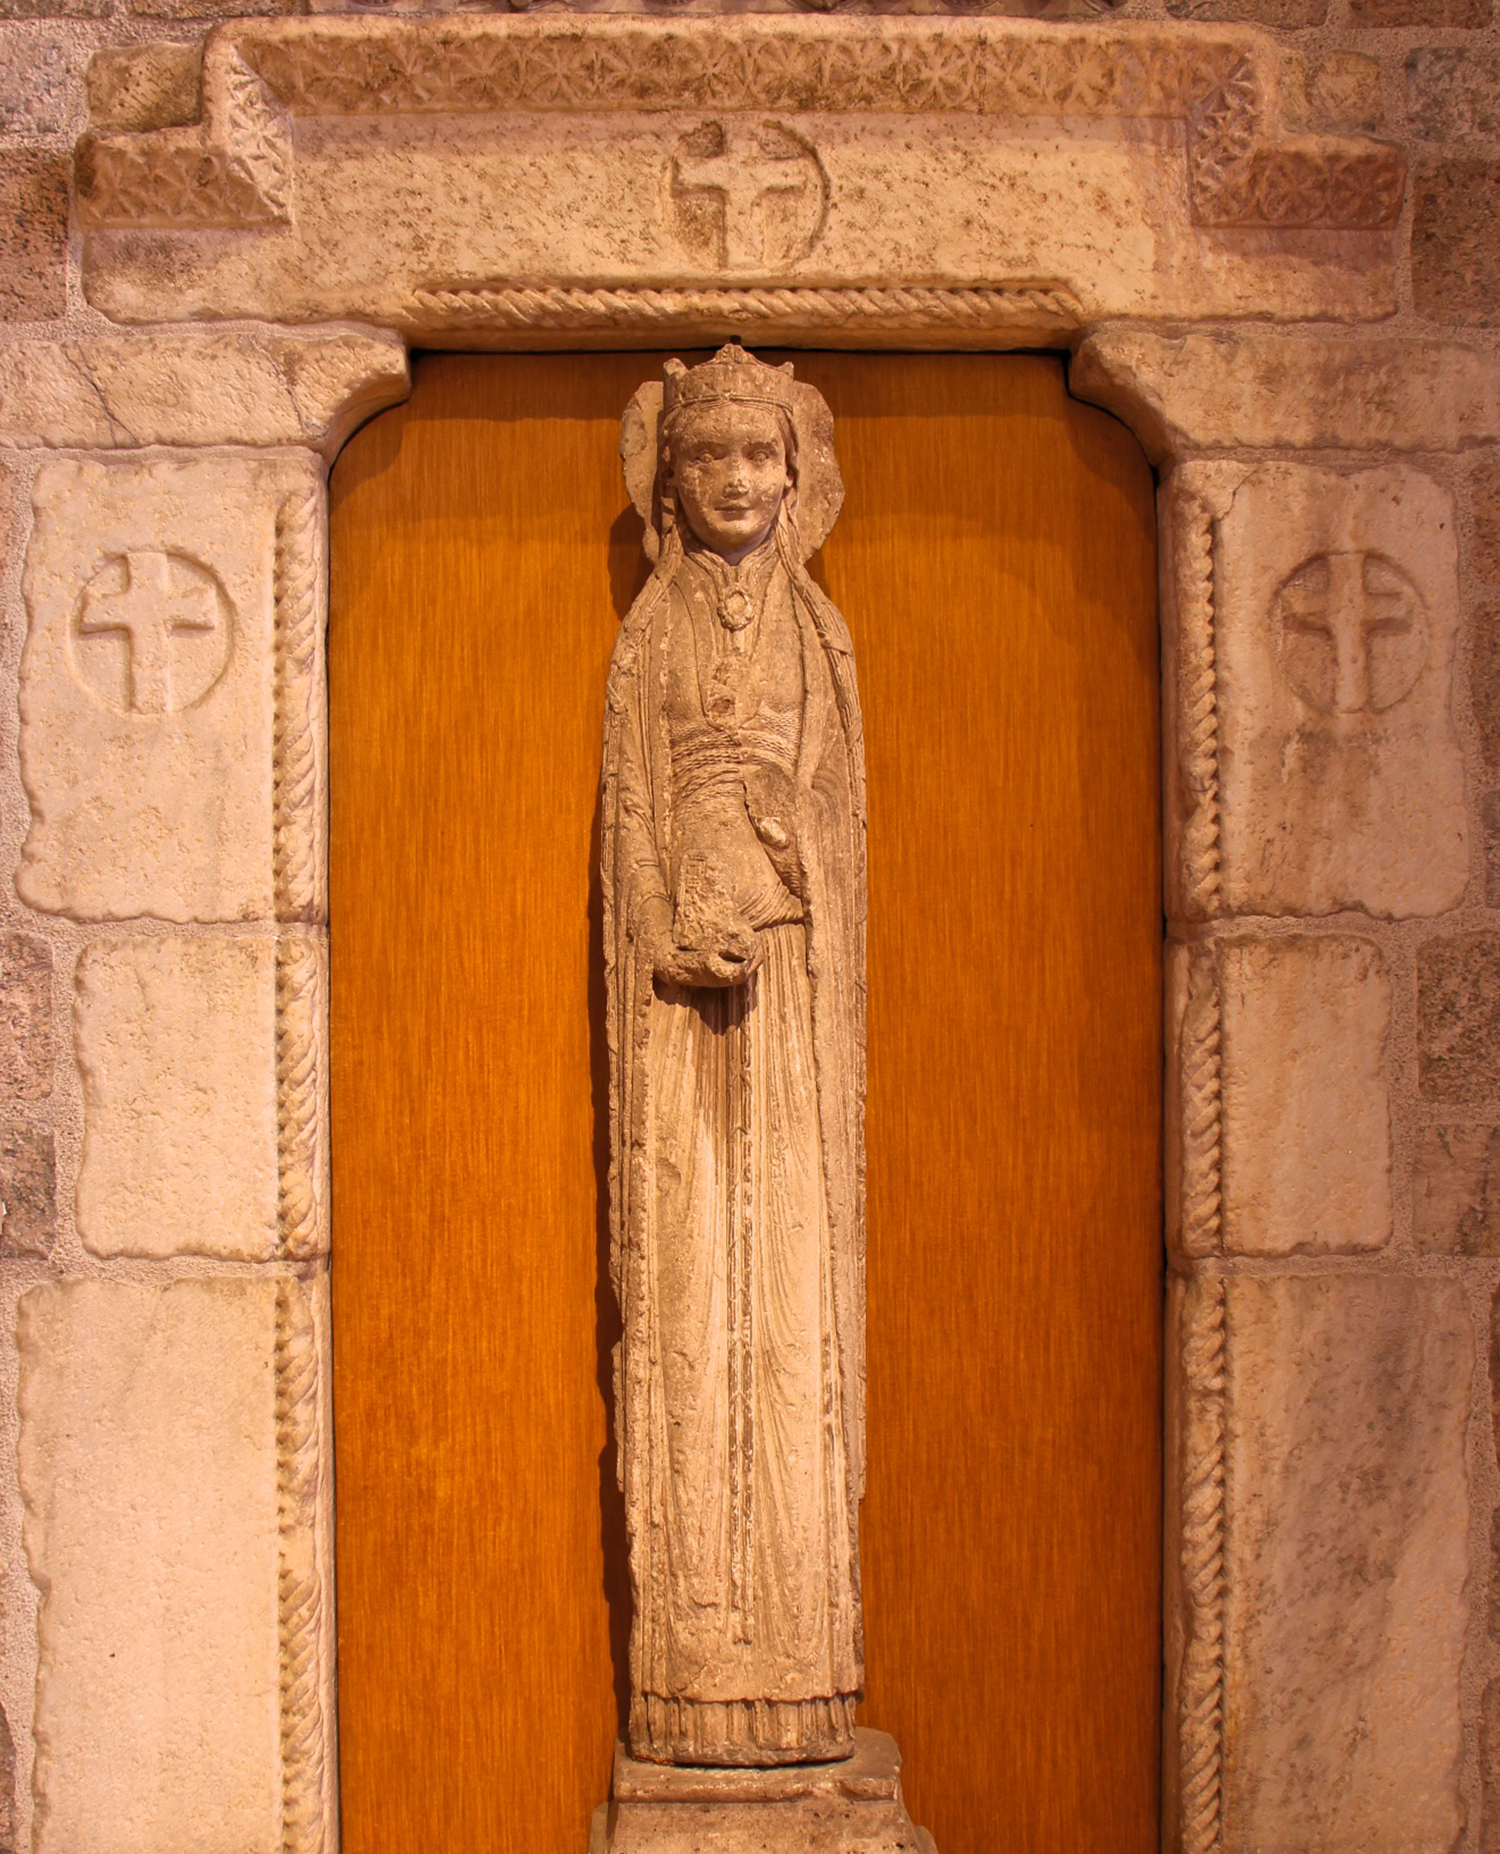 """Figure 1: Affectionately called the """"Slim Princess"""" by the Pitcairn family, this twelfth-century statue column of a haloed queen was purchased by Raymond Pitcairn in the 1920s and displayed in the parlor hall of Cairnwood, their Bryn Athyn home. Later it was installed in the great hall of Glencairn, enclosed by a stone portal with crosses."""